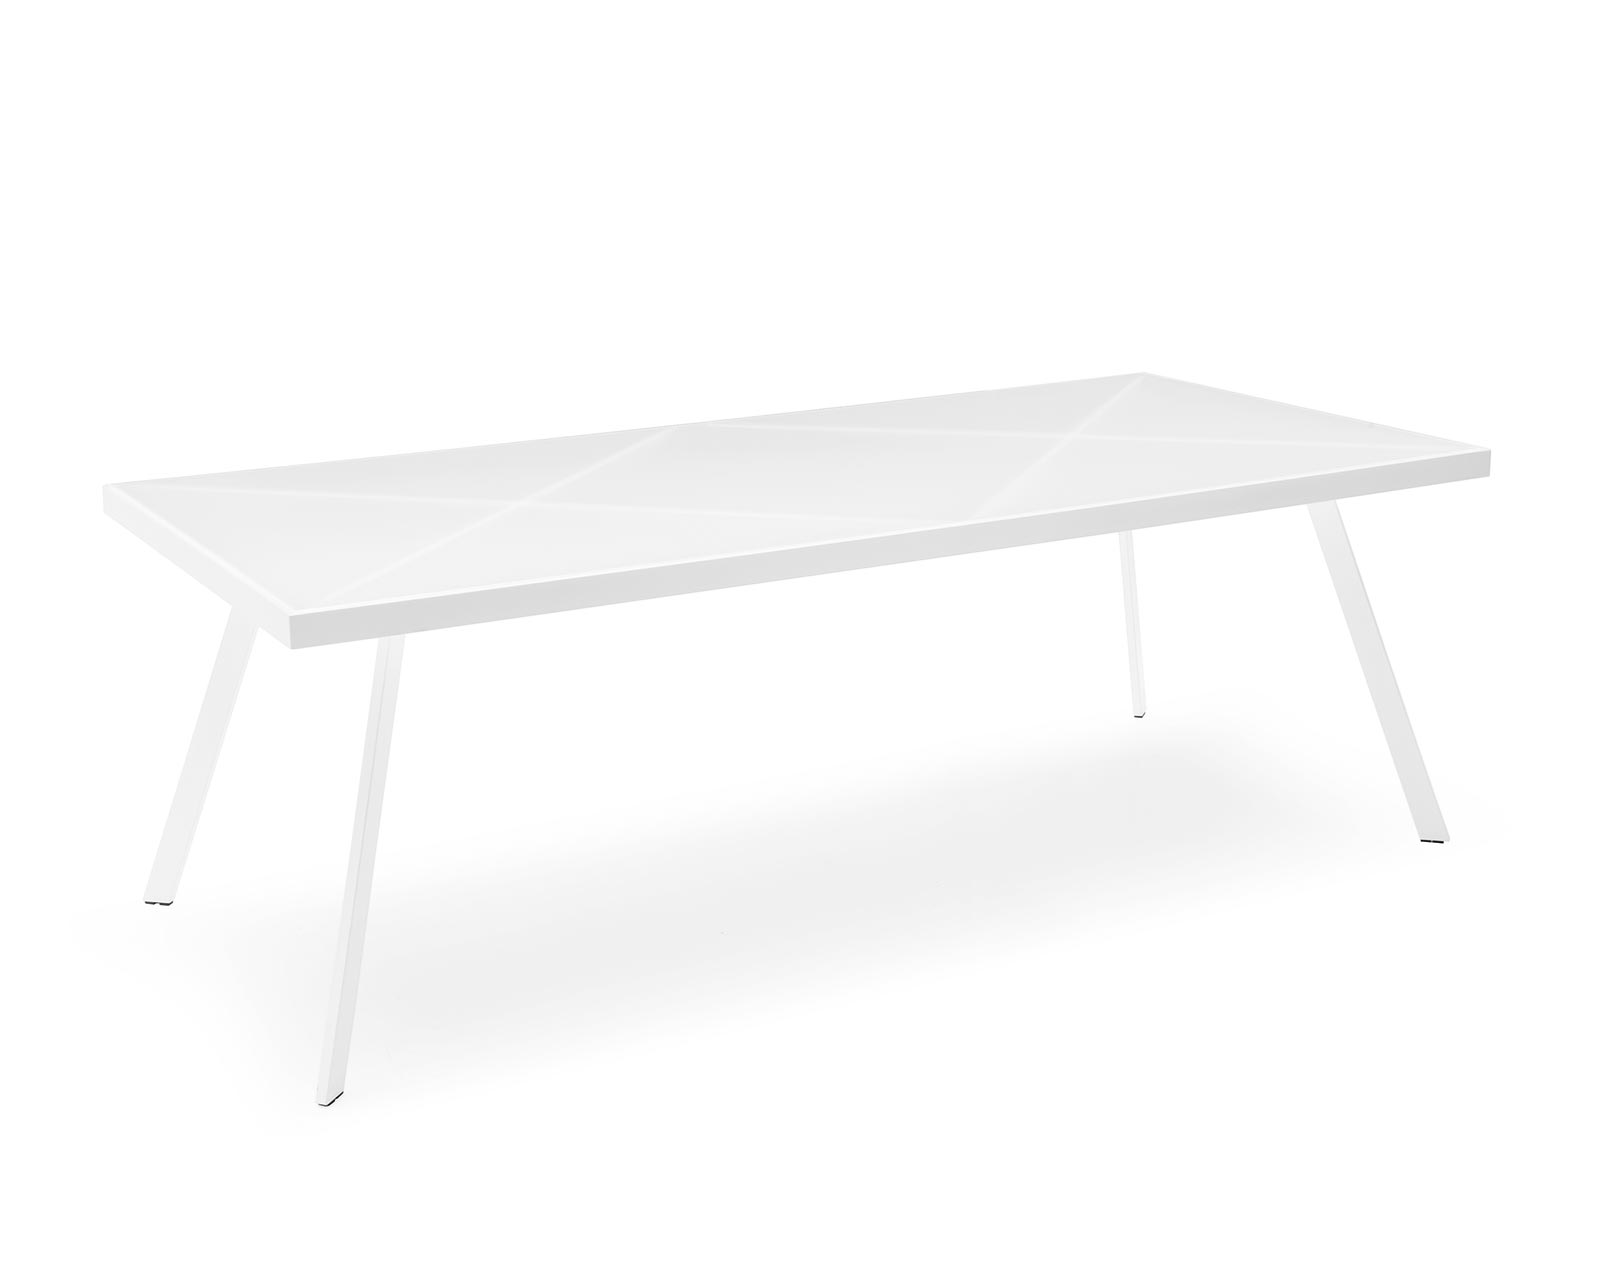 CS/4081-R 220 Frame Metal/Glass Dining Table, Calligaris Italy ...